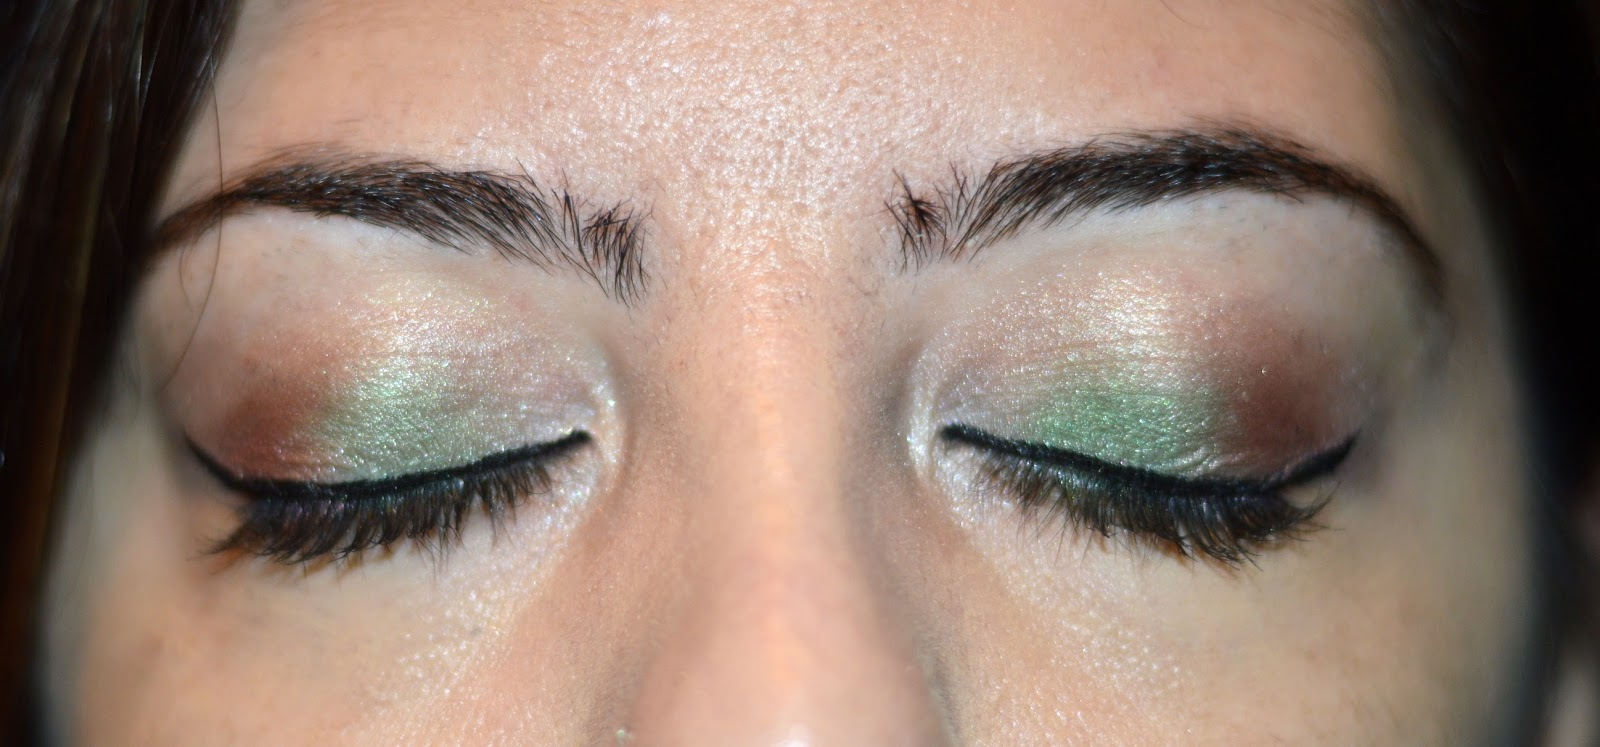 Makeup tutorial urban decay vice 3 festive holiday look phd first i primed my lid with a eyeshadow primer i always use the urban decay primer potion to make sure my makeup lasts the entire day baditri Images